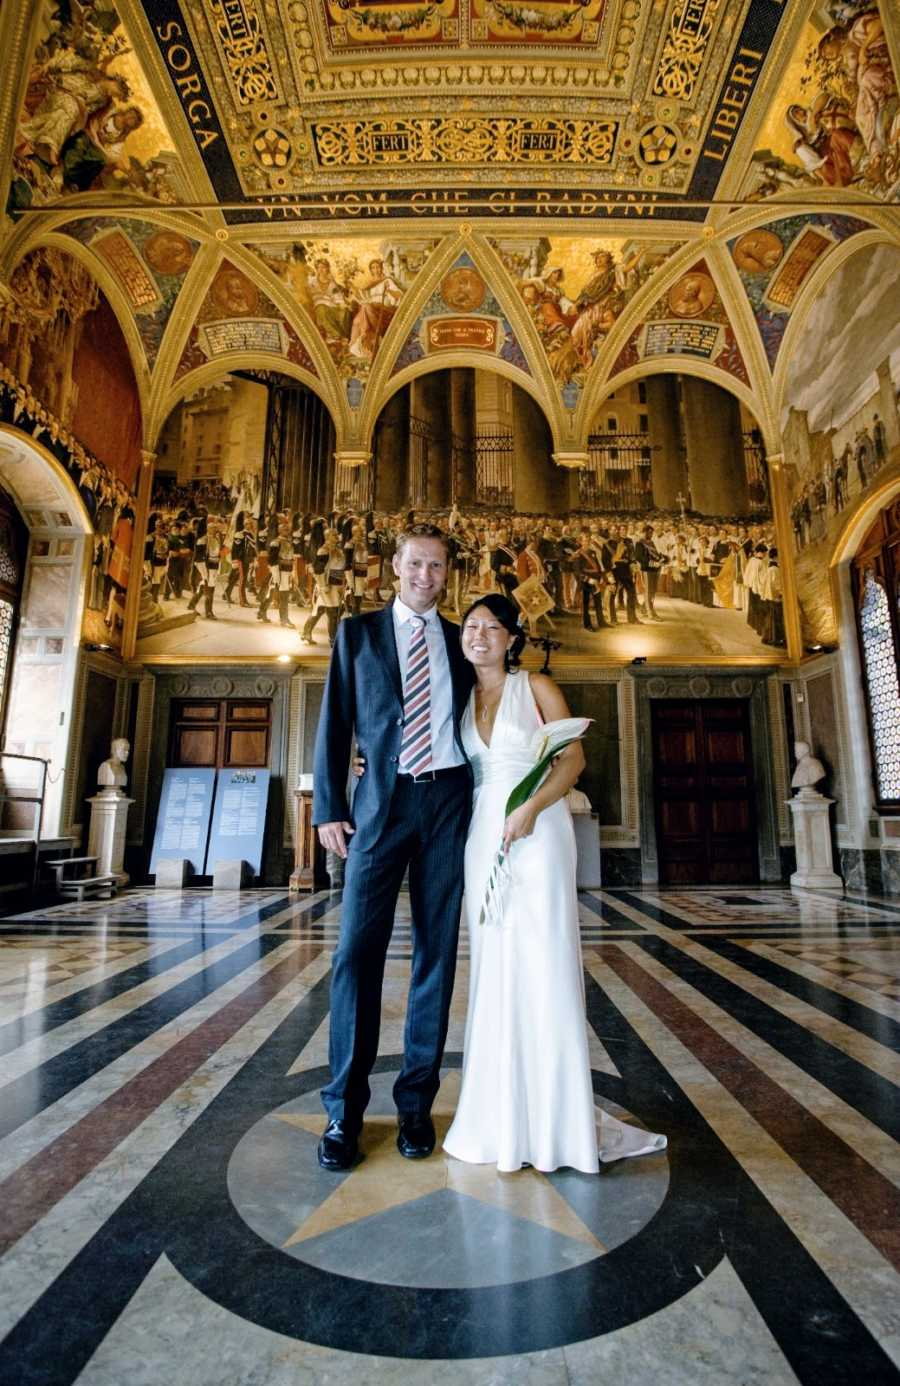 Interracial couple pose for a photo in a cathedral during their wedding